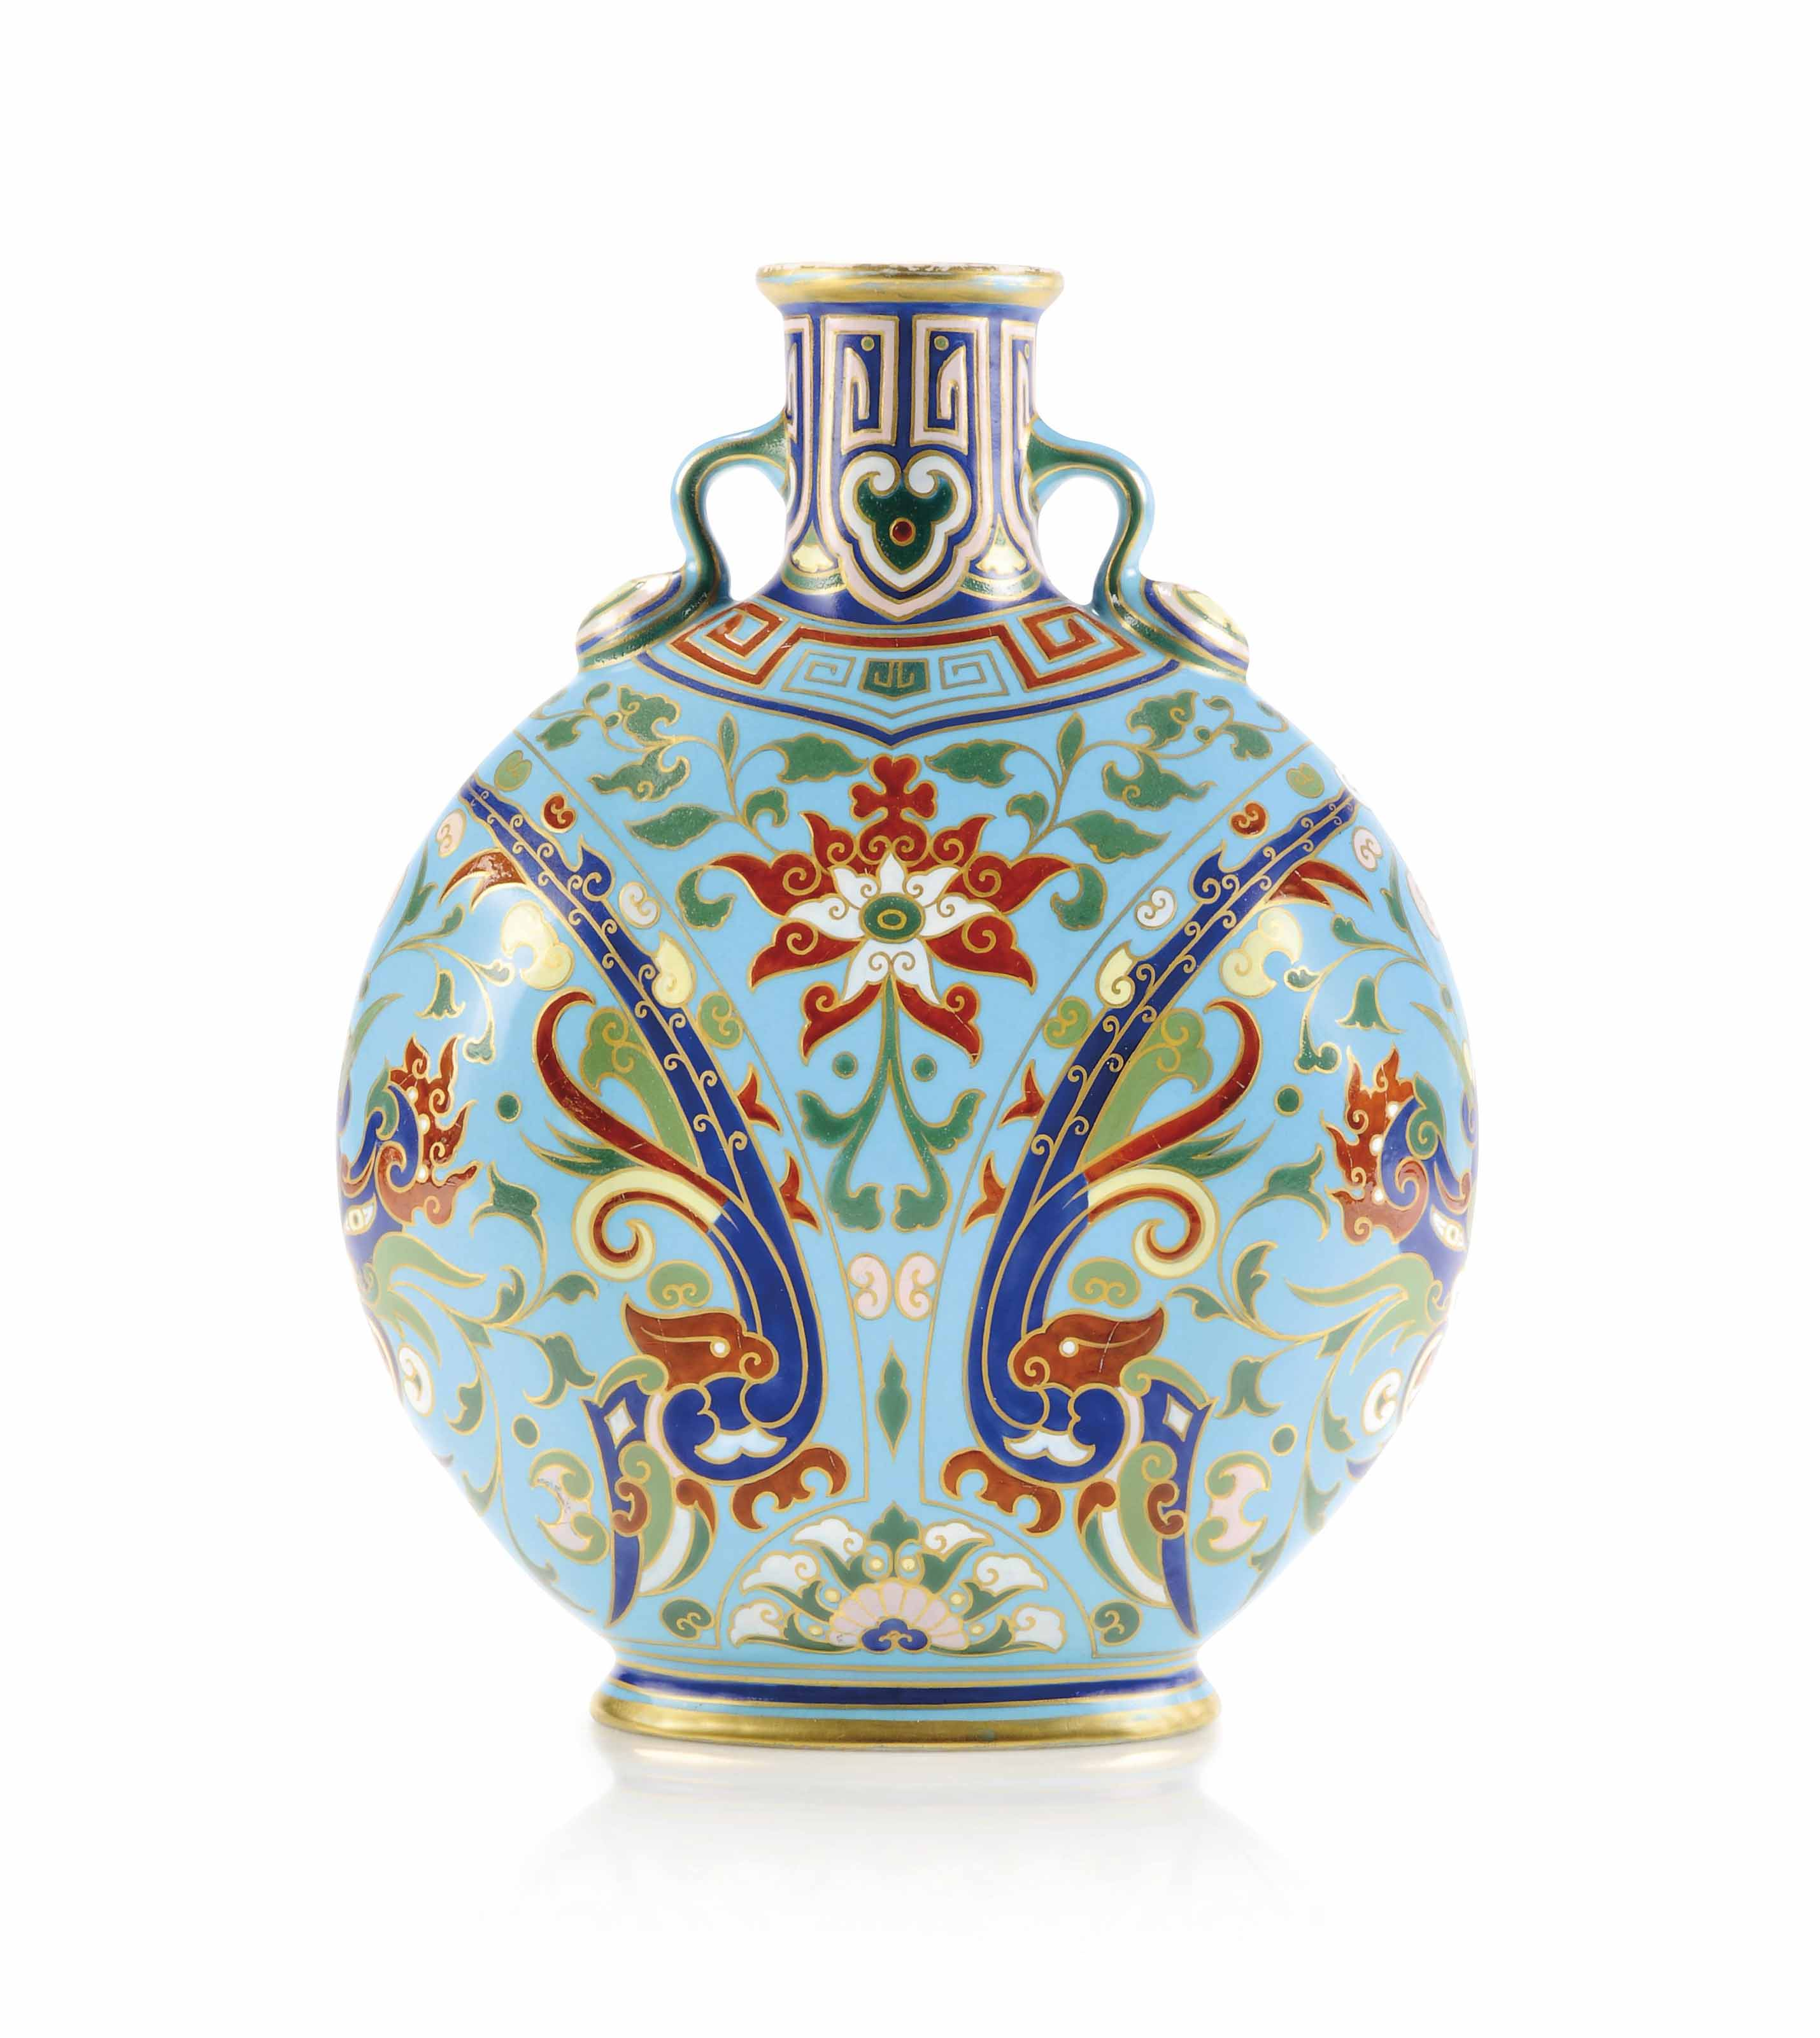 A Minton cloisonné porcelain vase with decoration designed by Dr. Christopher Dresser, 1867. 10⅛ in (26.5 cm) high. Sold for £4,375 on 30 January 2013 at Christie's in London